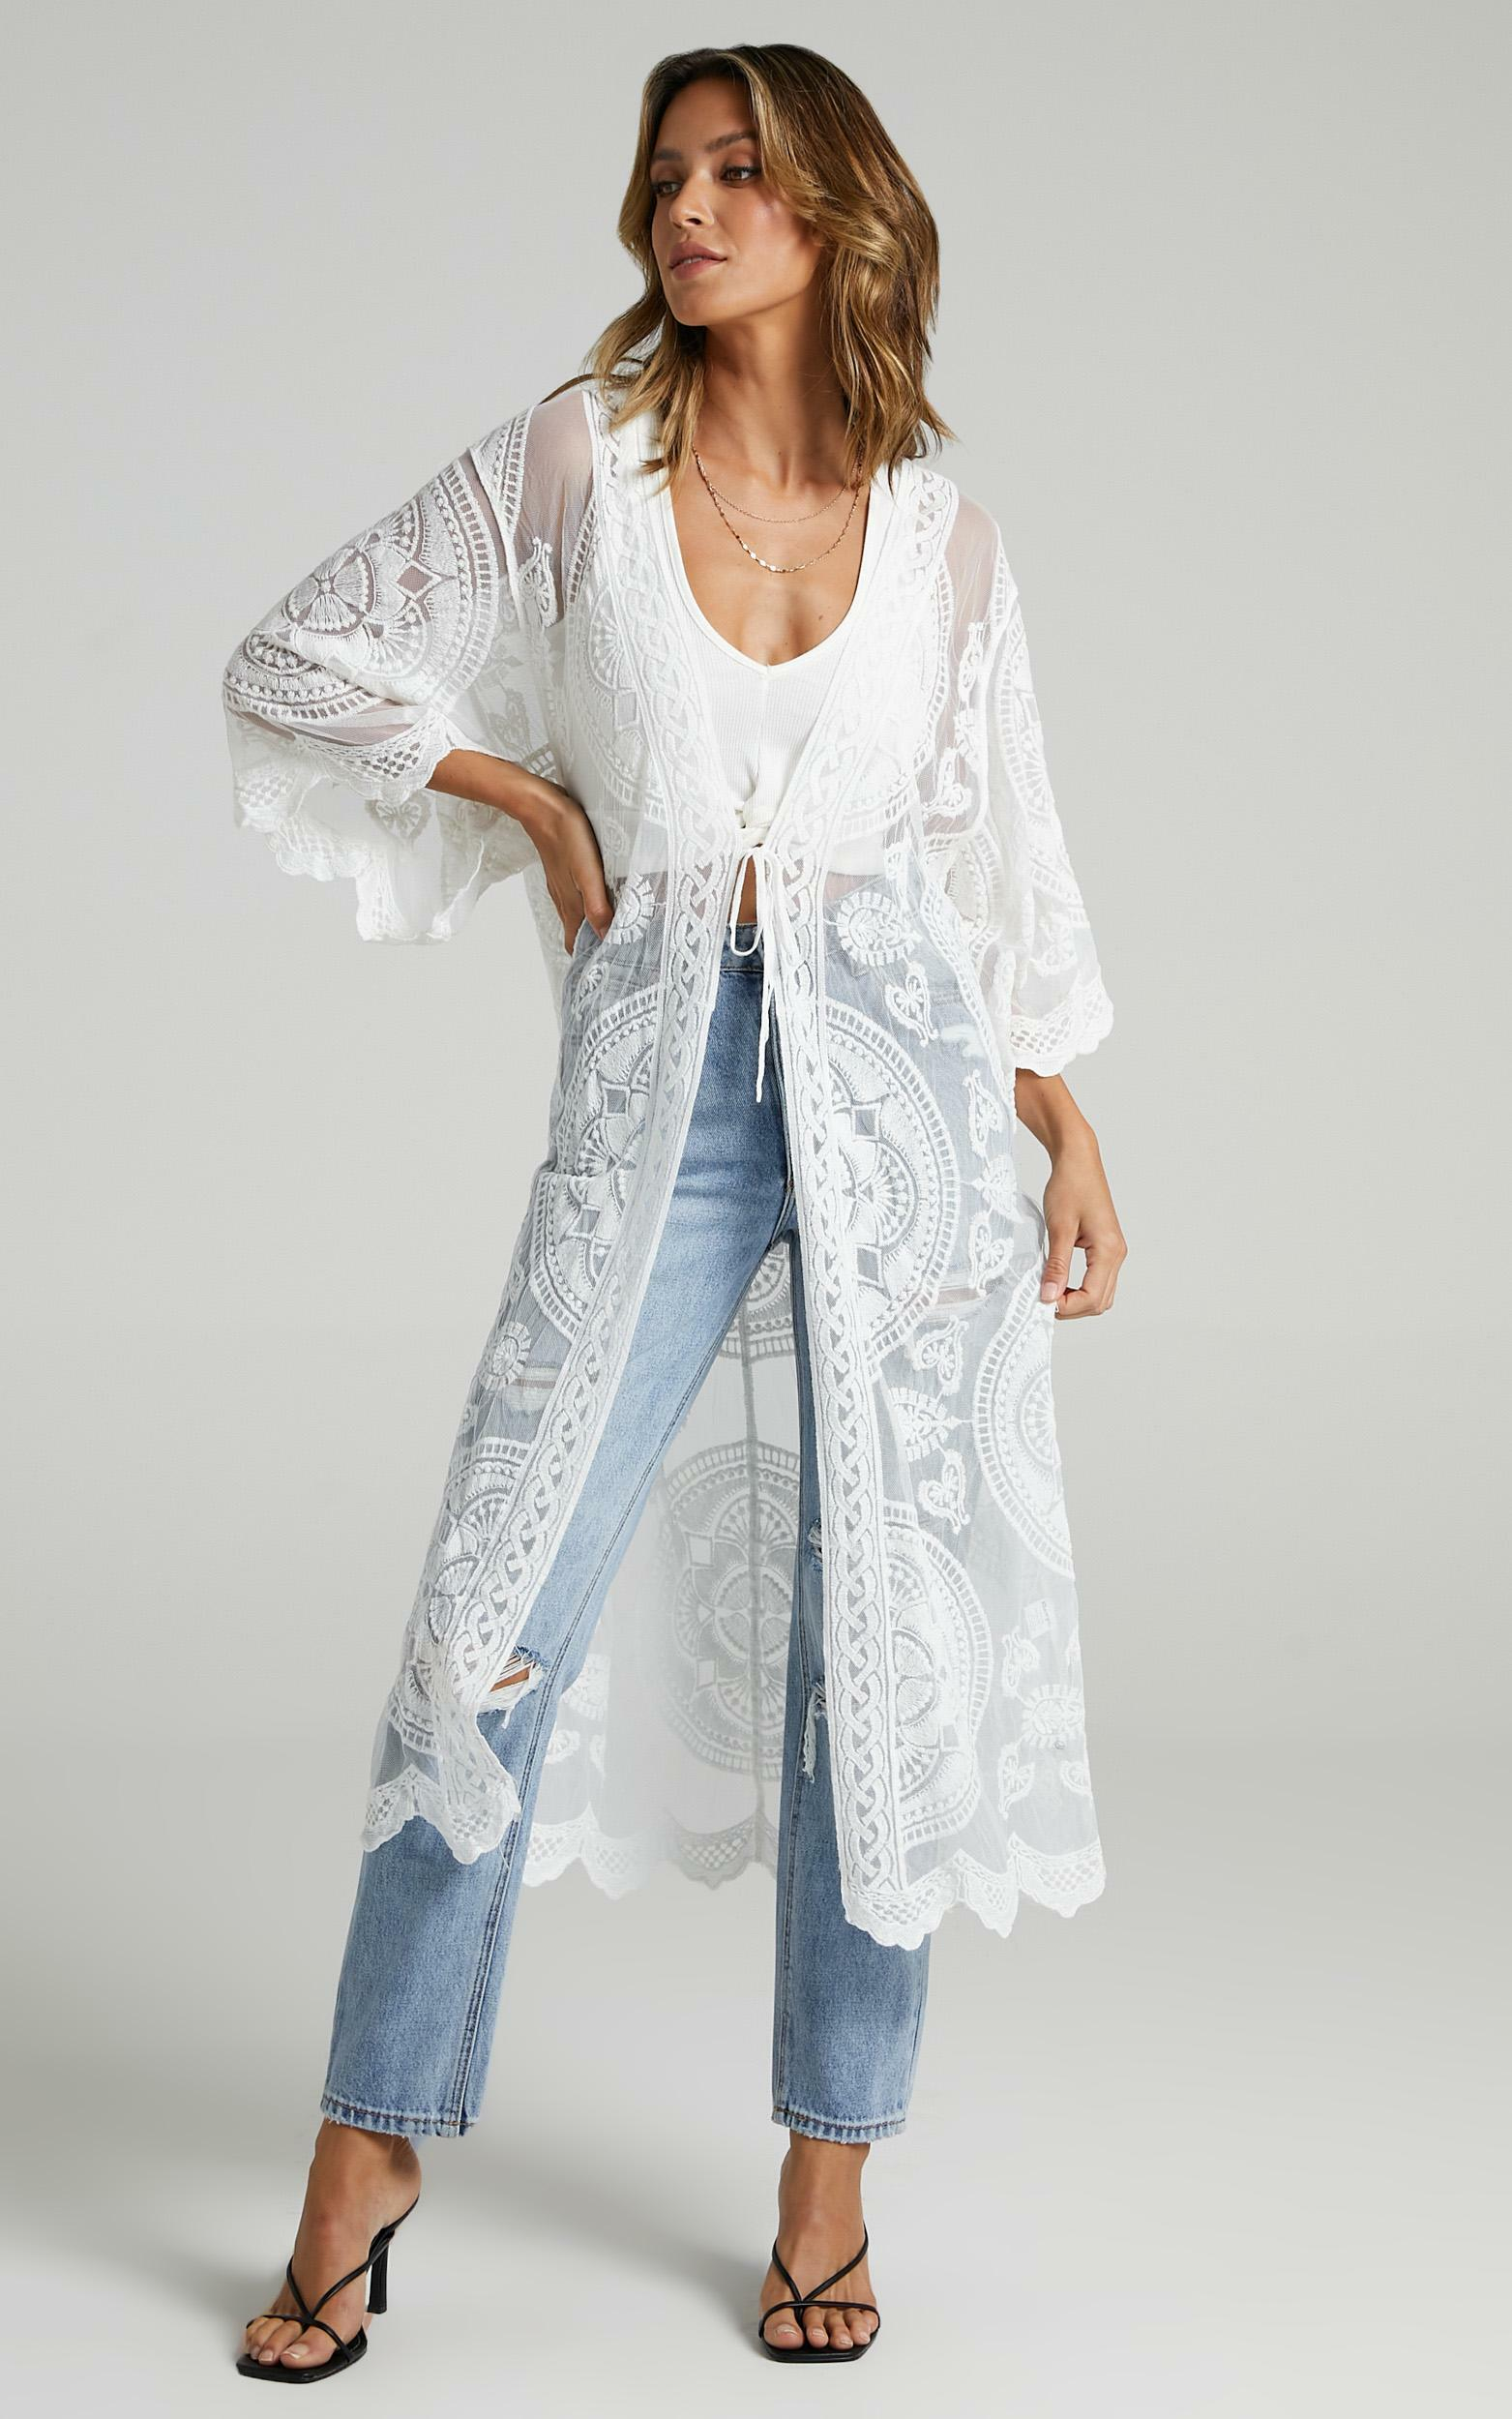 Off The Grid Bell Sleeve Kimono in White - M/L, WHT2, hi-res image number null